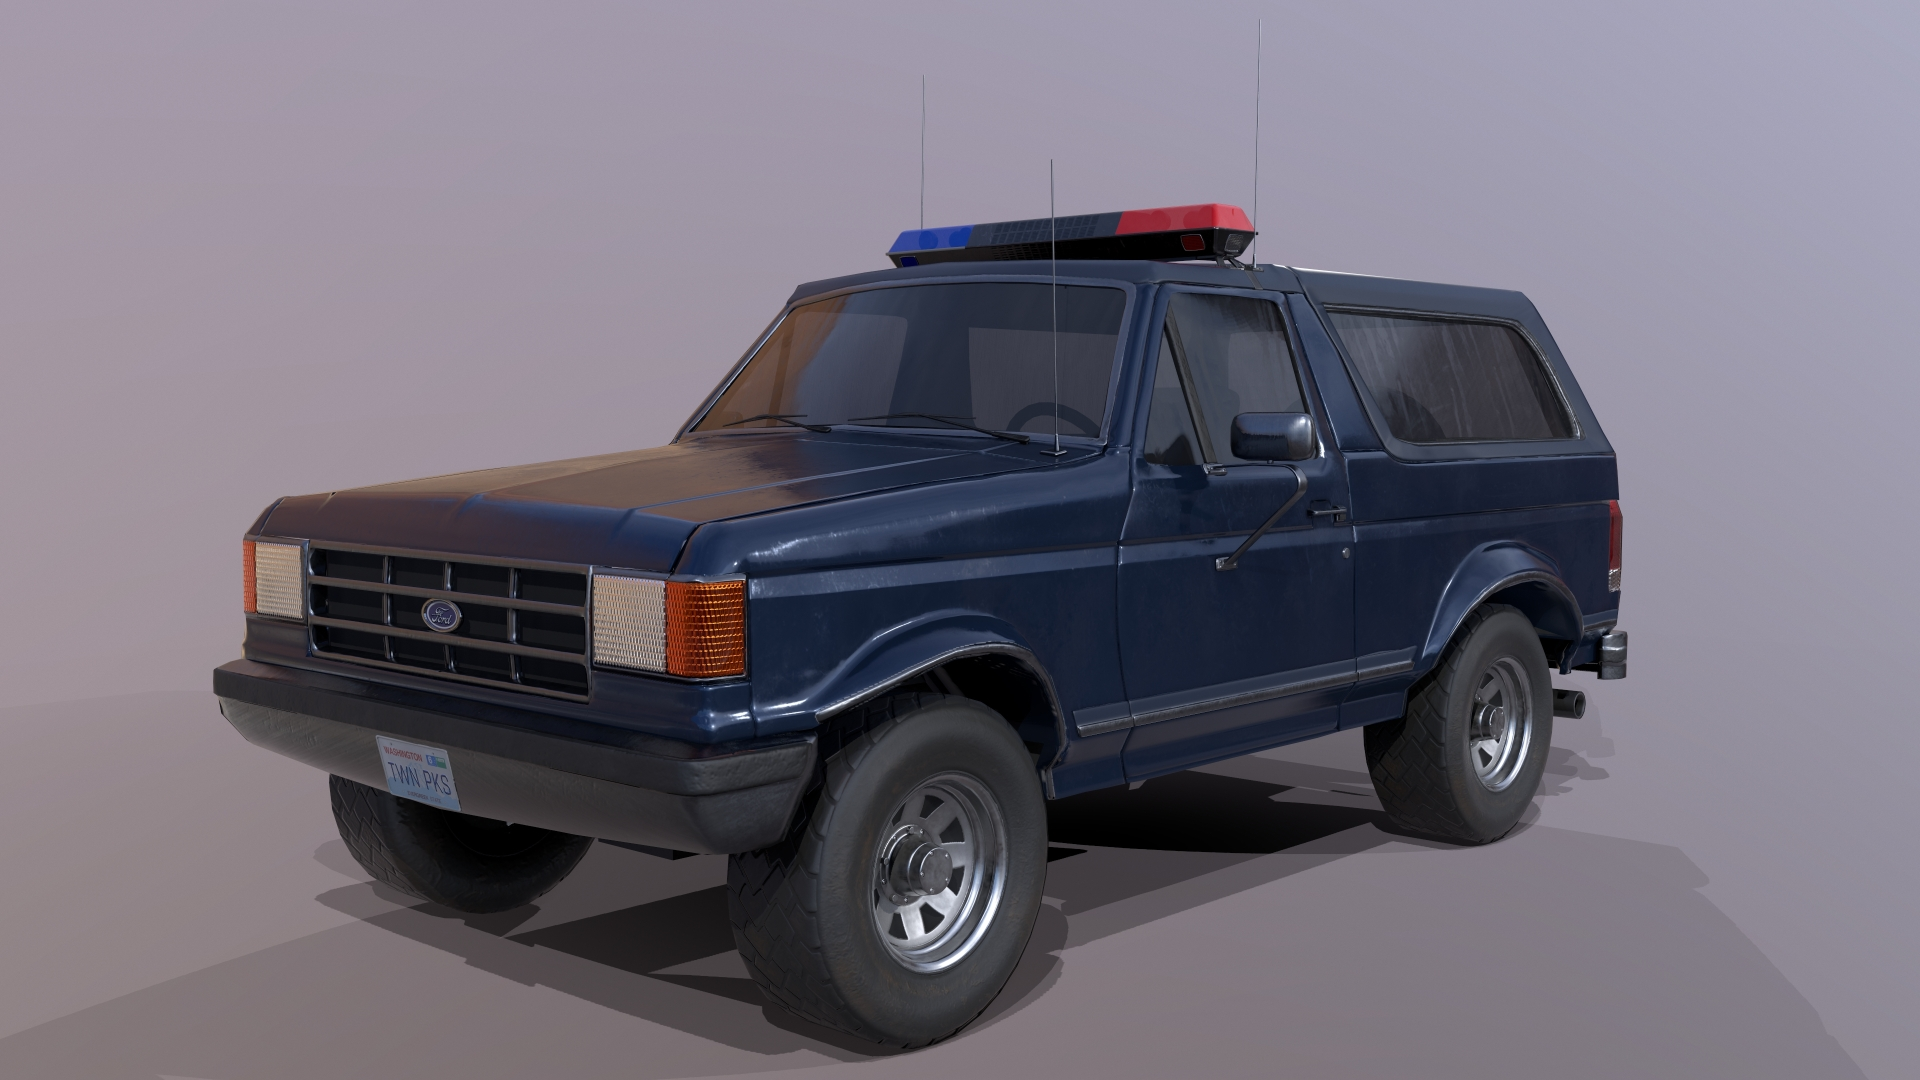 '87 Ford Bronco